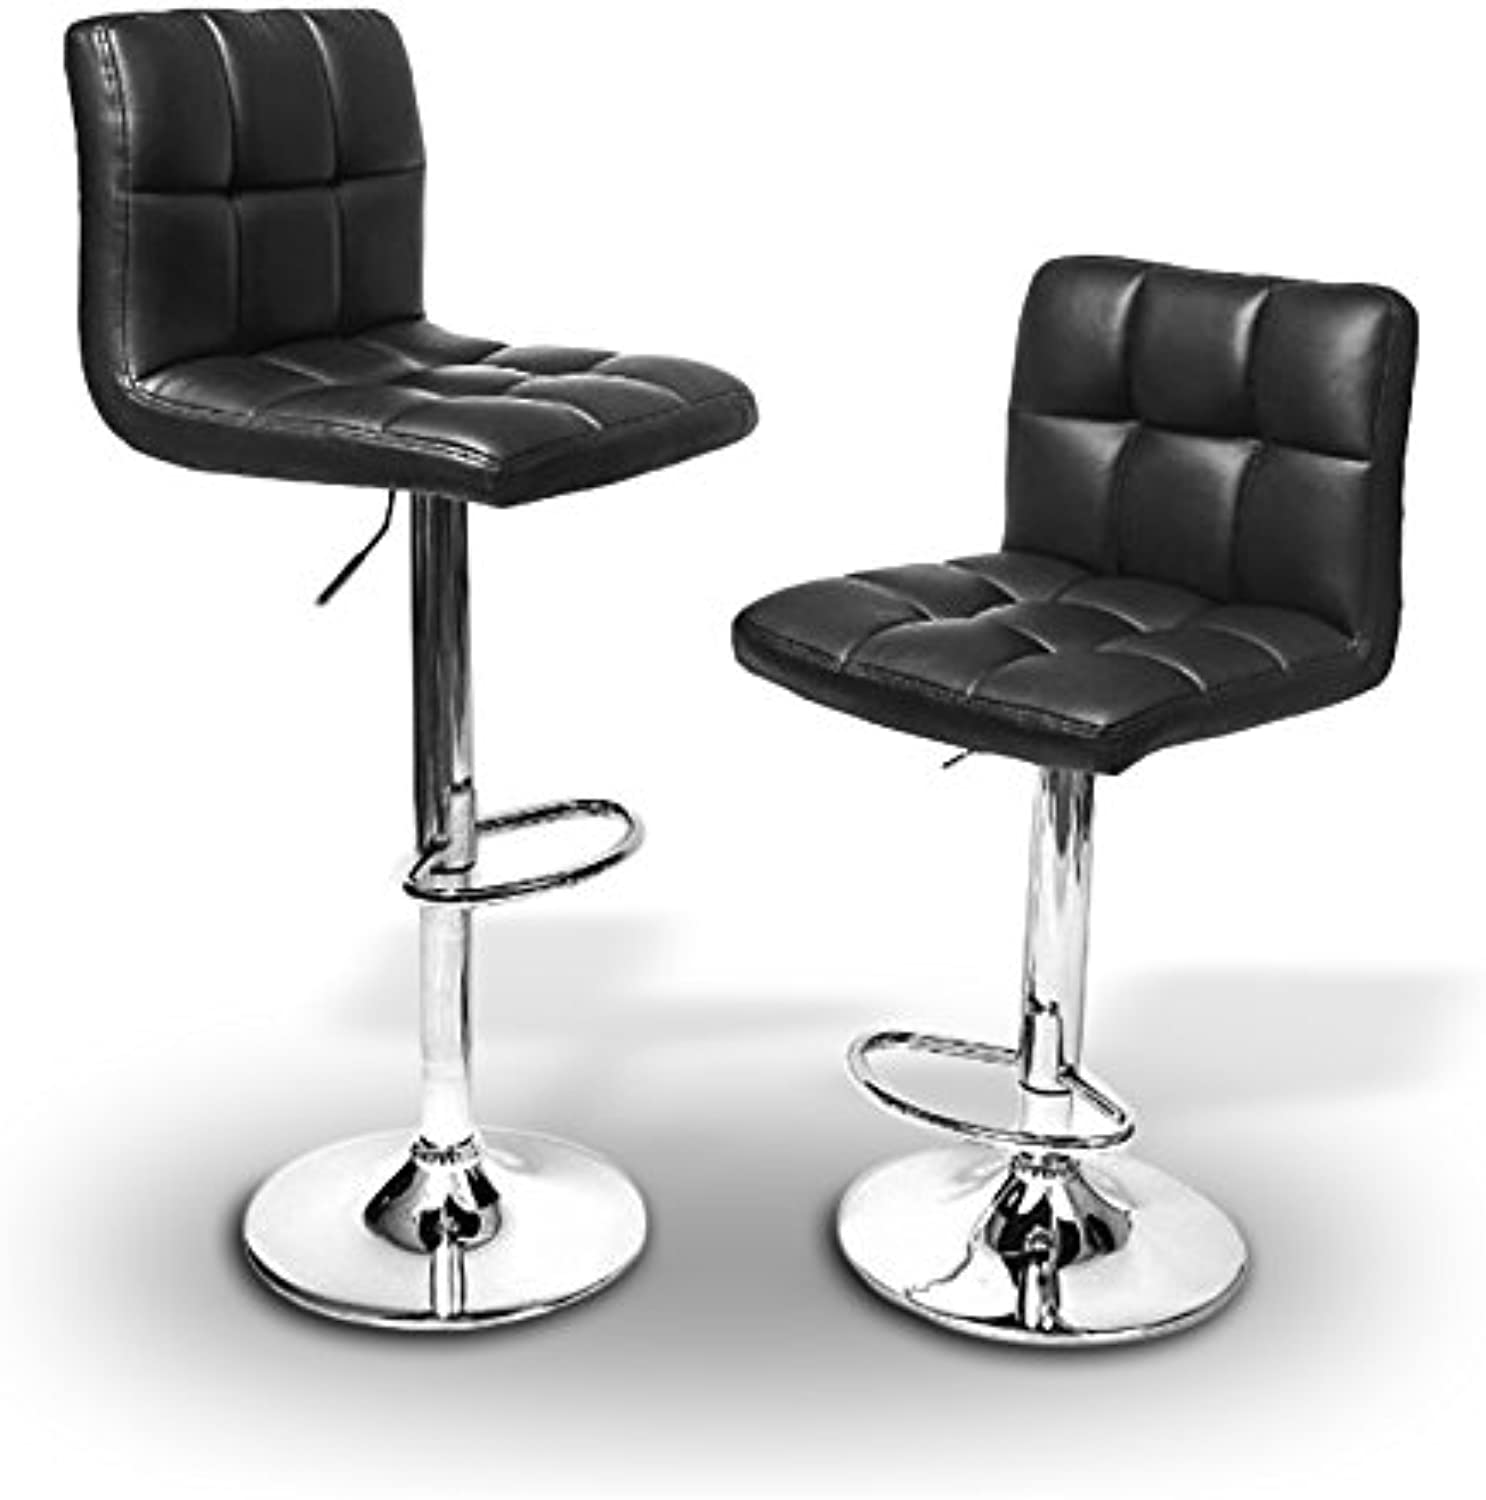 2 x PU Leather Hydraulic Lift Adjustable Counter Bar Stool Dining Chair Black -Pack of 2 (150) Made By jersey seating